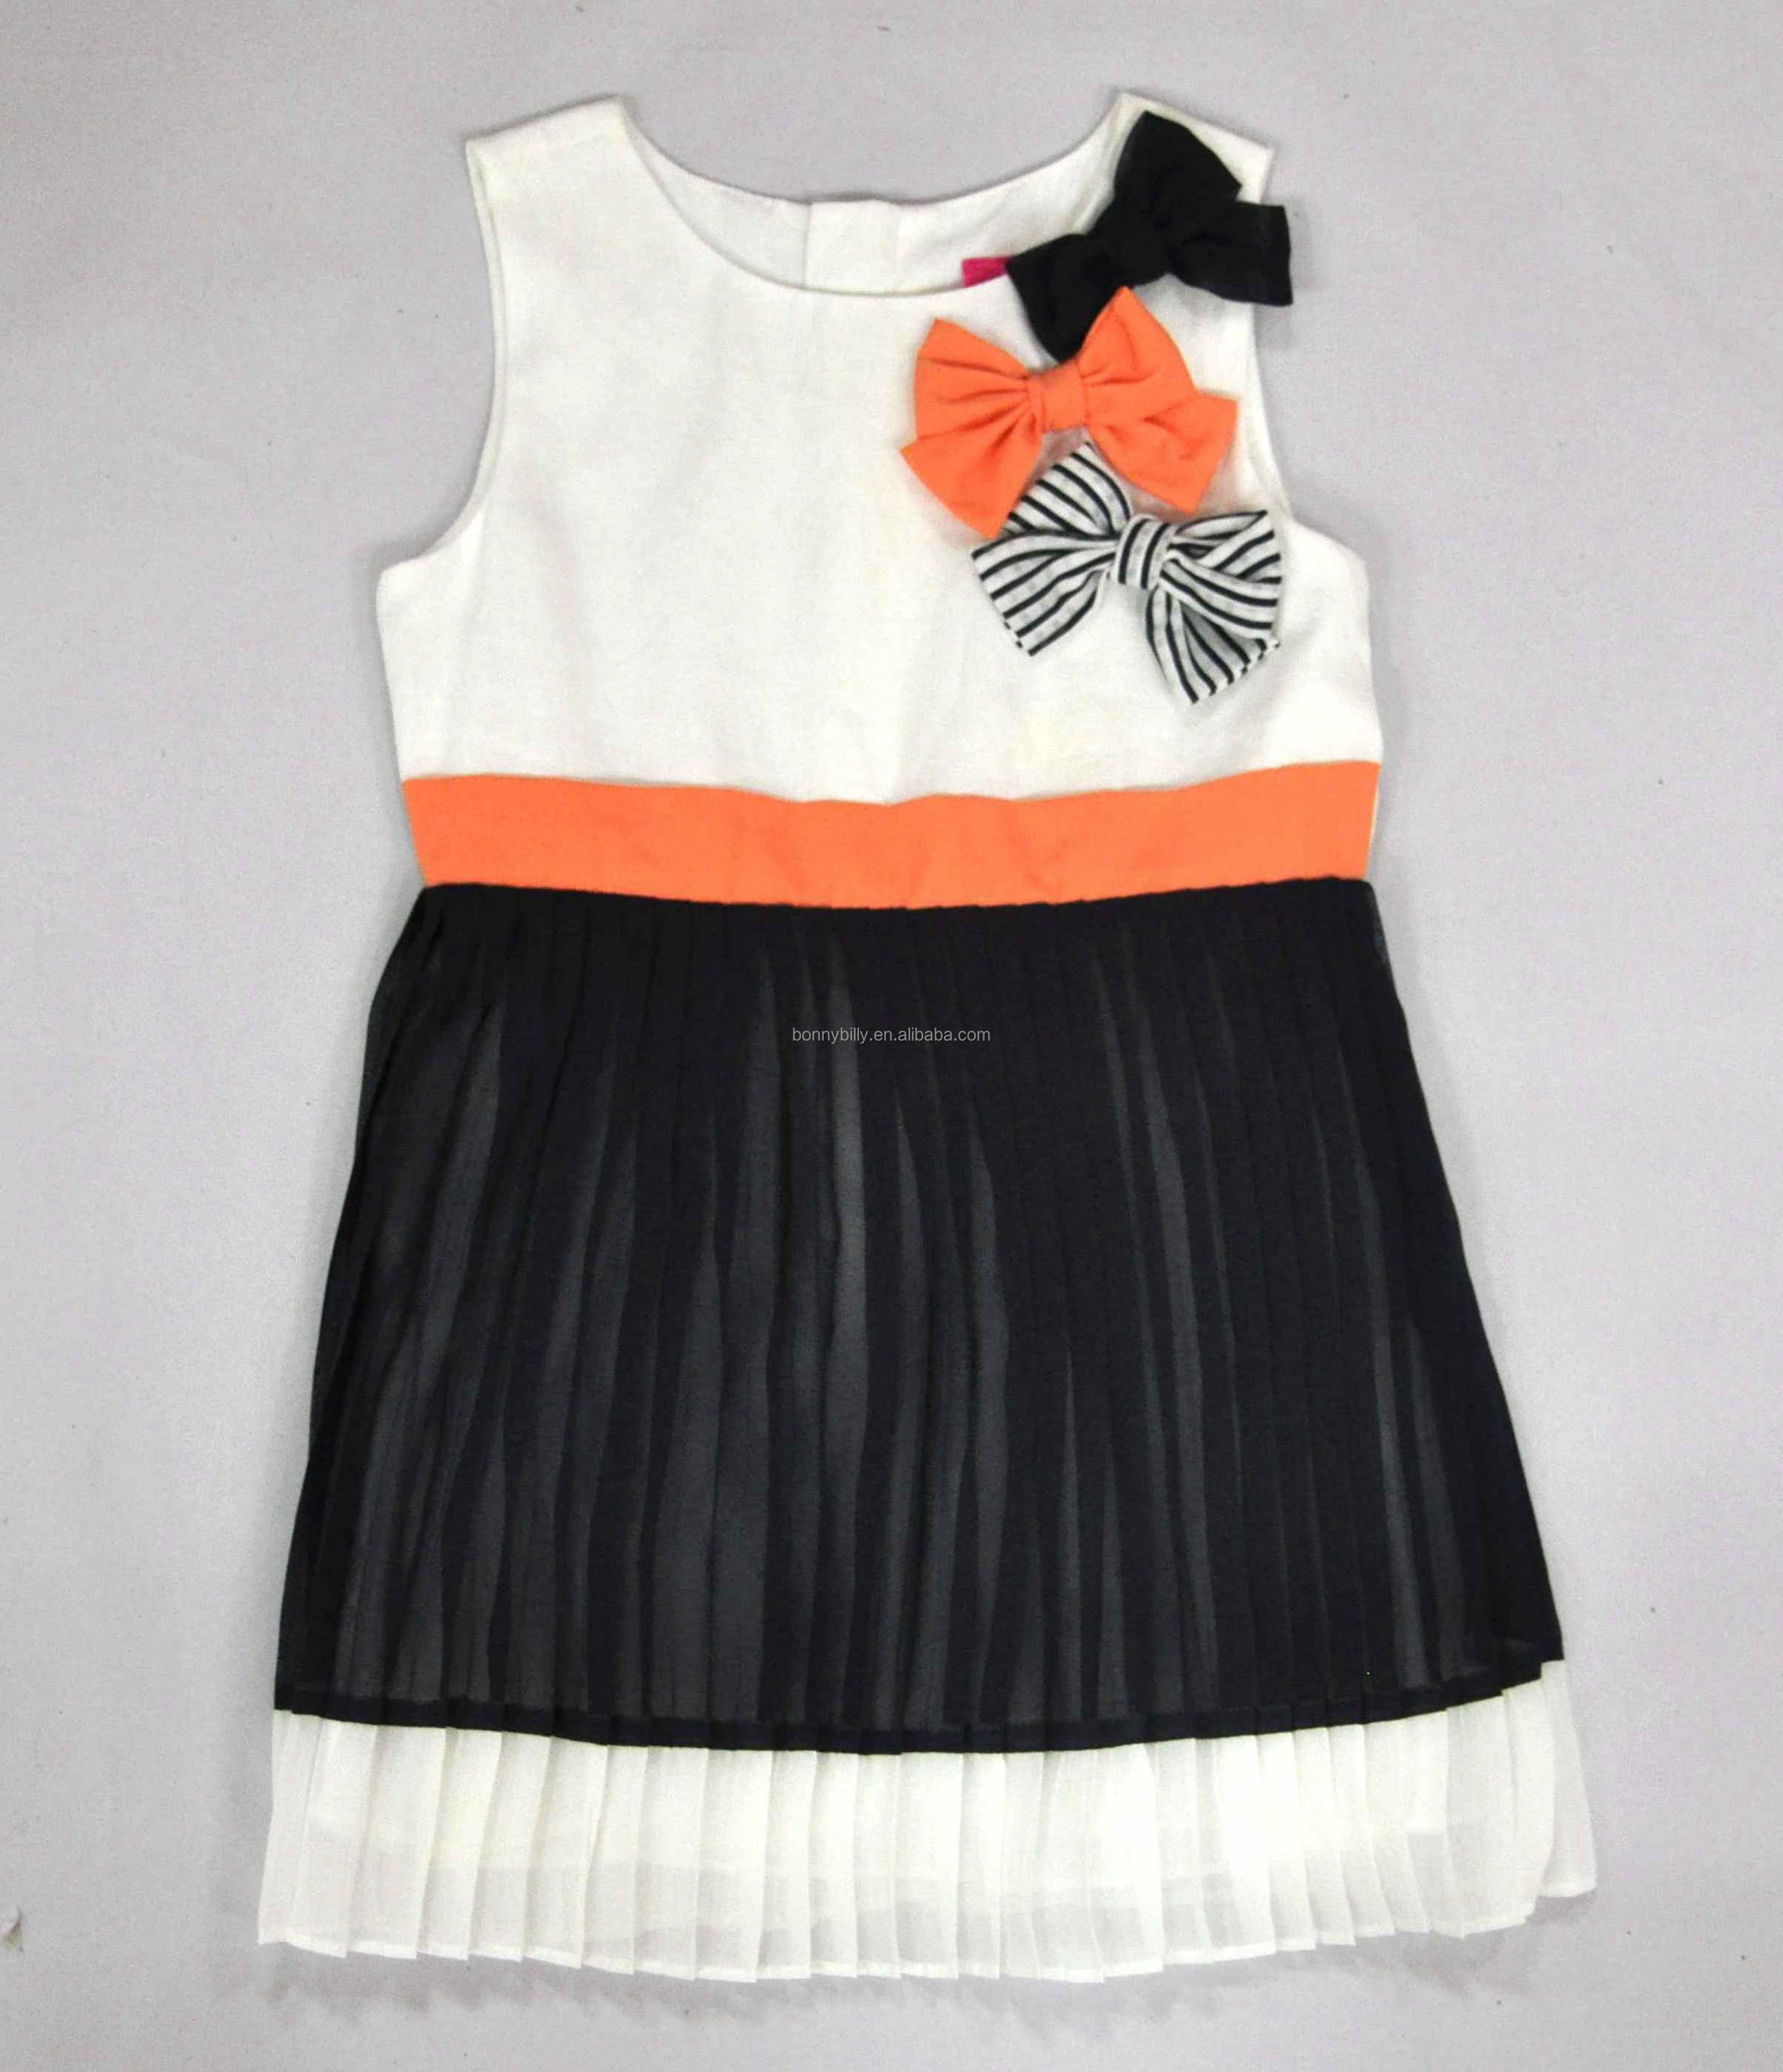 Girls Frock Designs For Summer Frock Design For Baby Girl Baby Frock